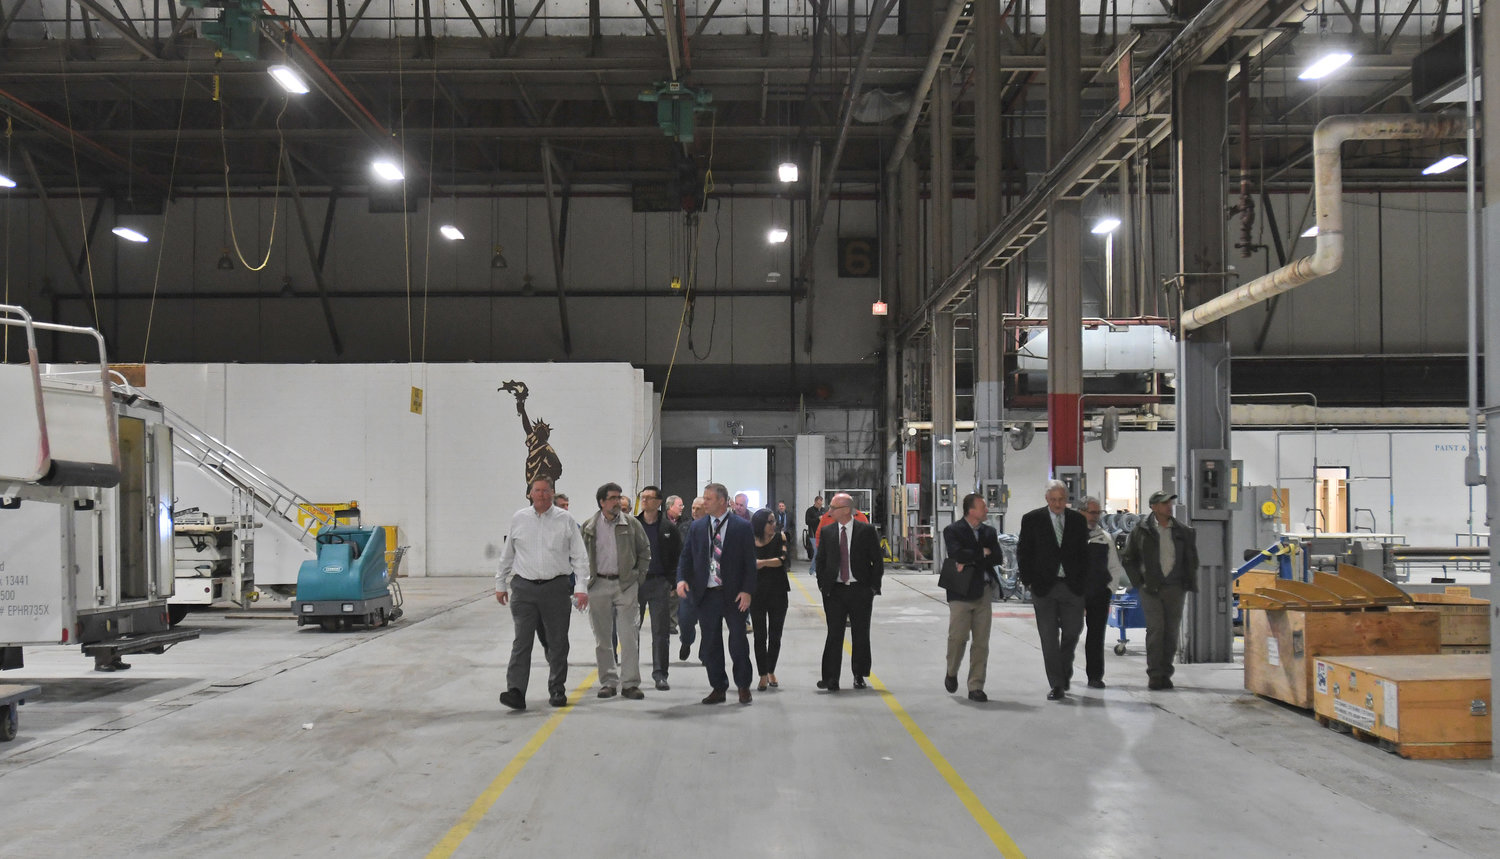 ON TOUR — Oneida County legislators walk through the core of building 101 on Tuesday evening at Griffiss International Airport. The county is taking legal ownership of the former Air Force hangar with plans to reduce utility costs and leasing the space to tenants, perhaps in the aircraft maintenance industry.